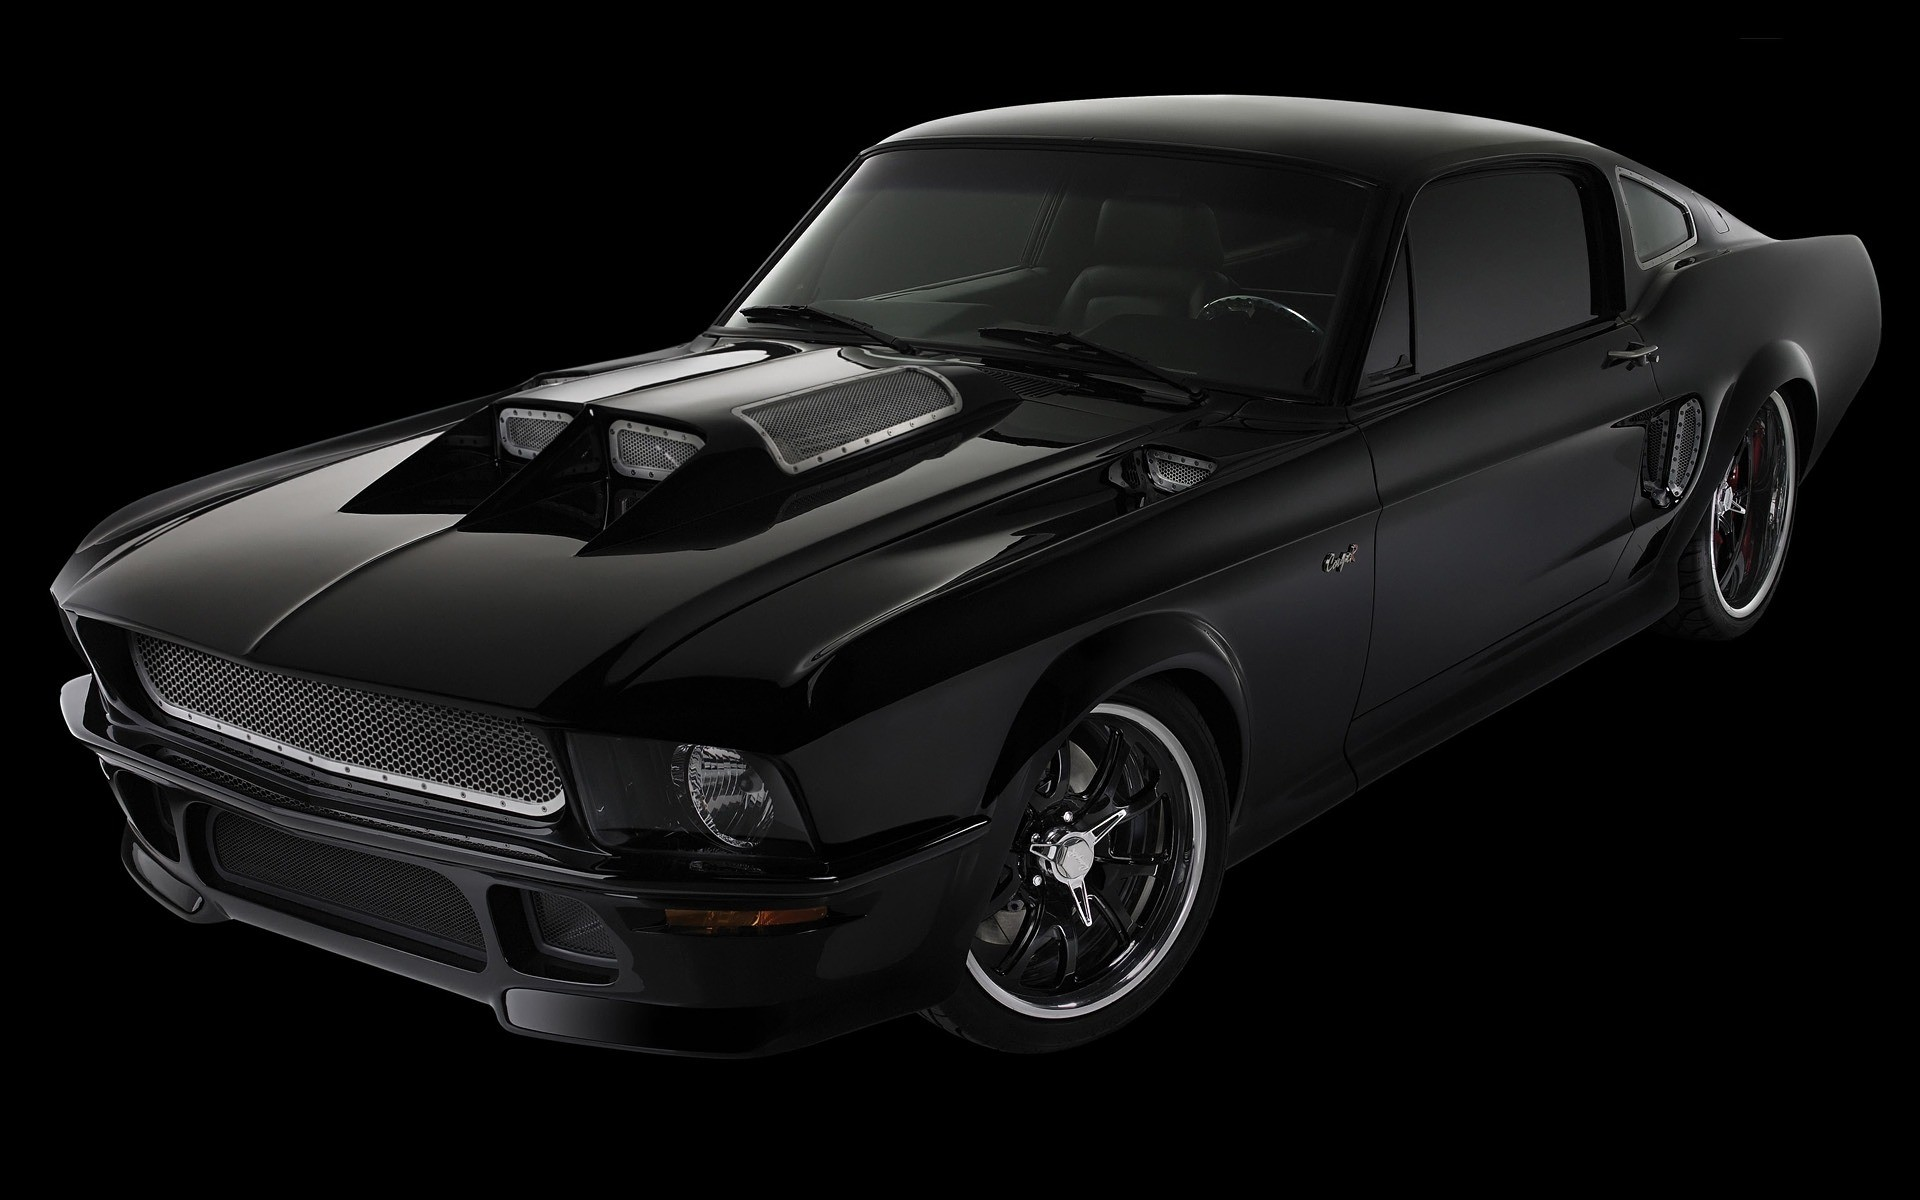 1920x1200 Obsidian Ford Mustang Wallpaper Ford Cars Wallpapers